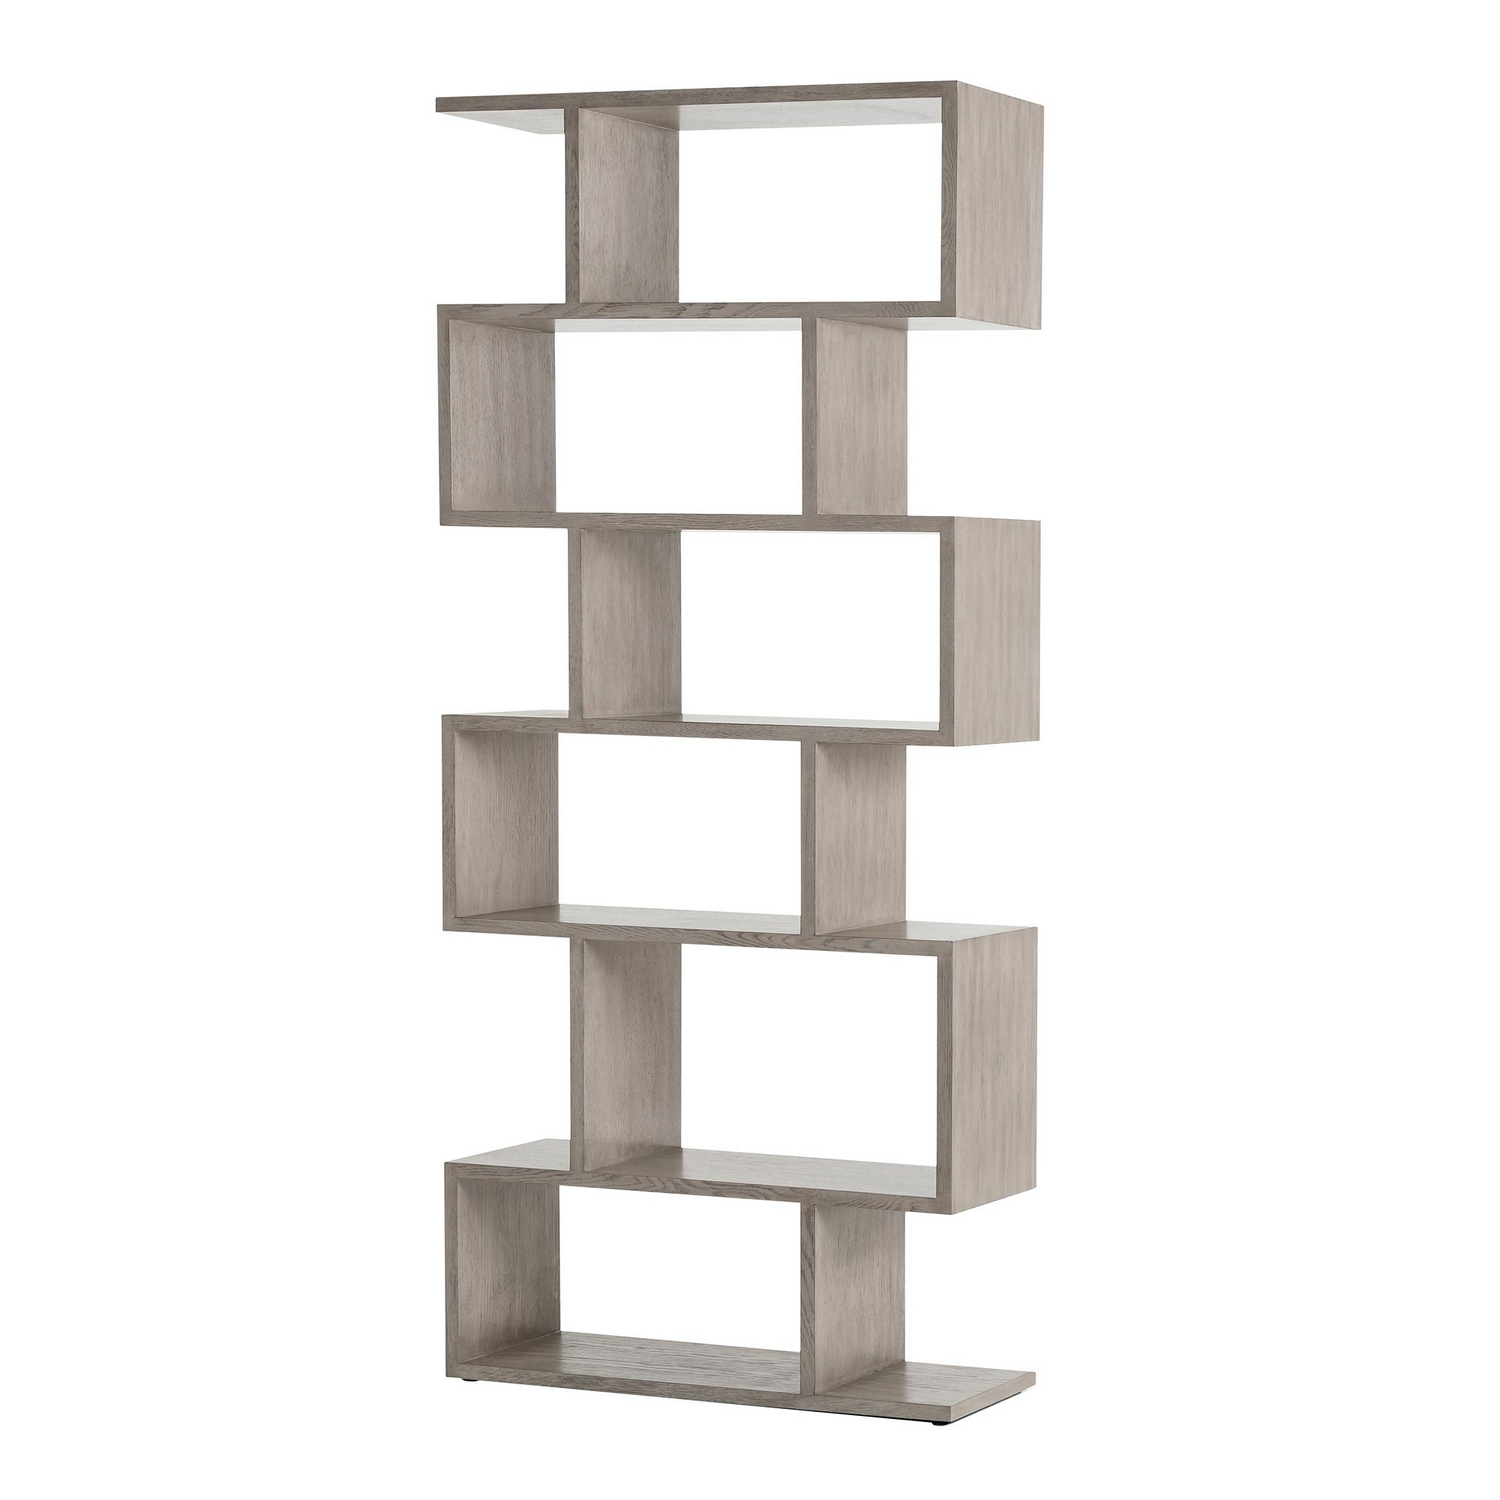 Bookshelf from the Horner collection by Arteriors 5501